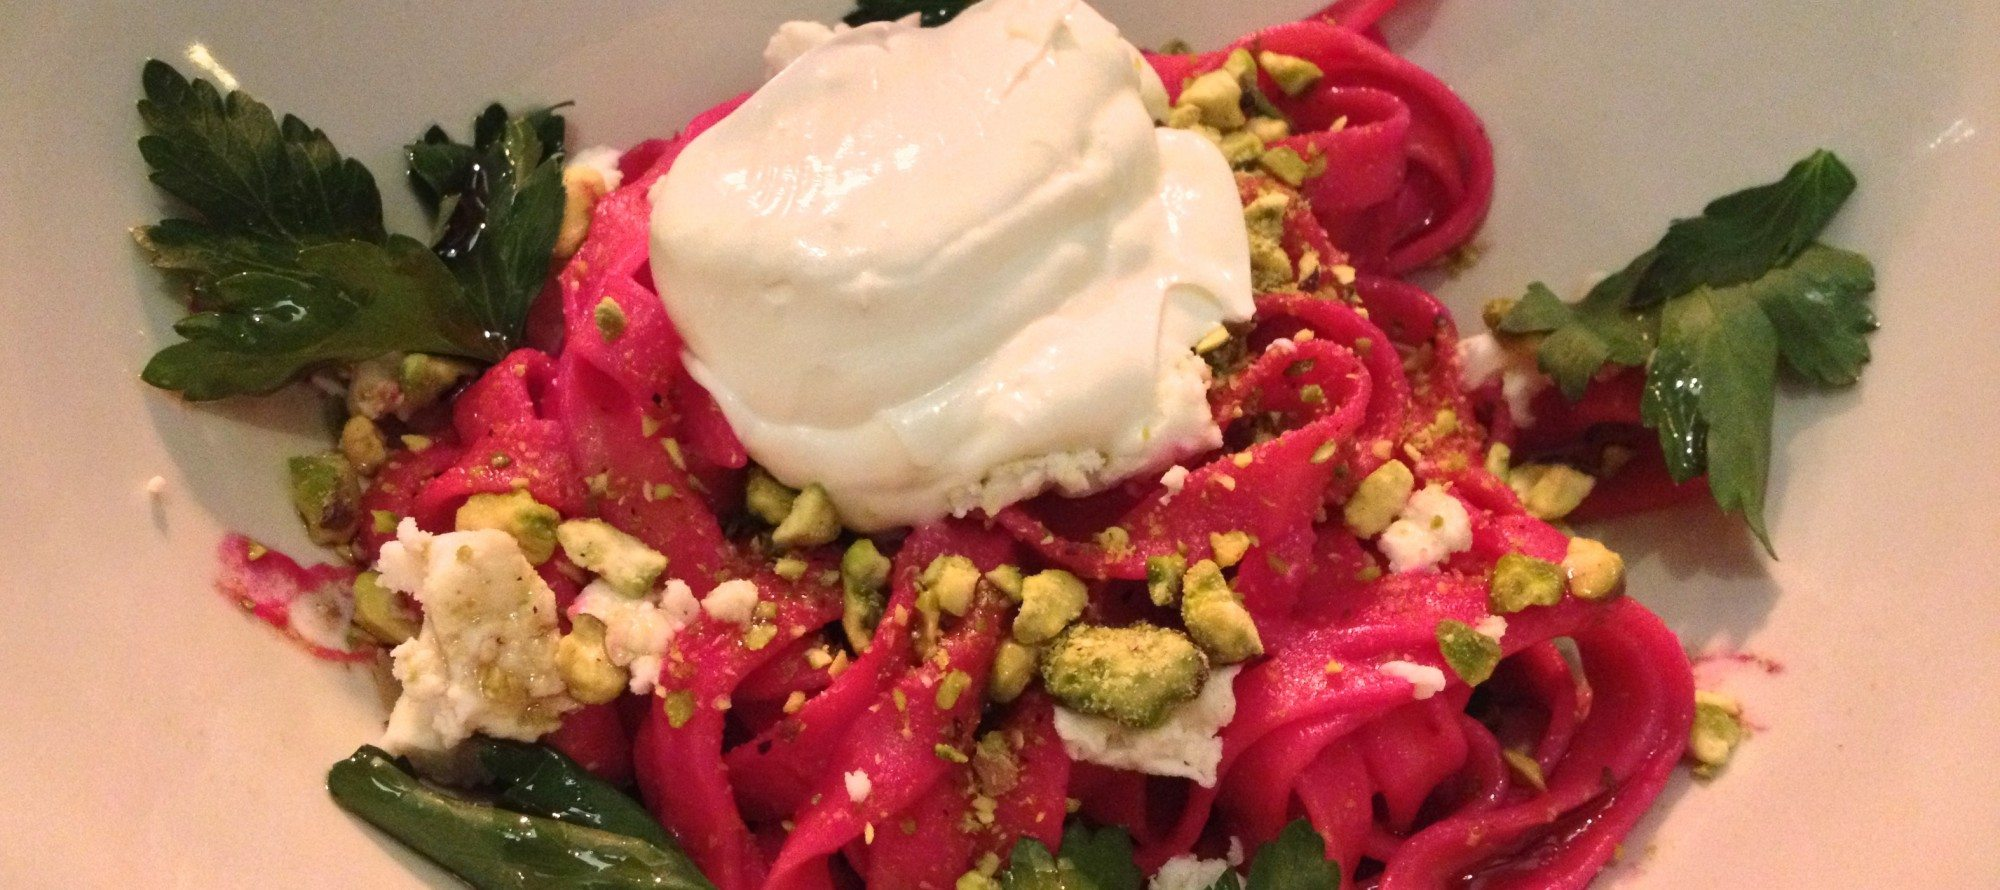 ANNE'S PICKS: Festive beet pasta at The Albion Rooms